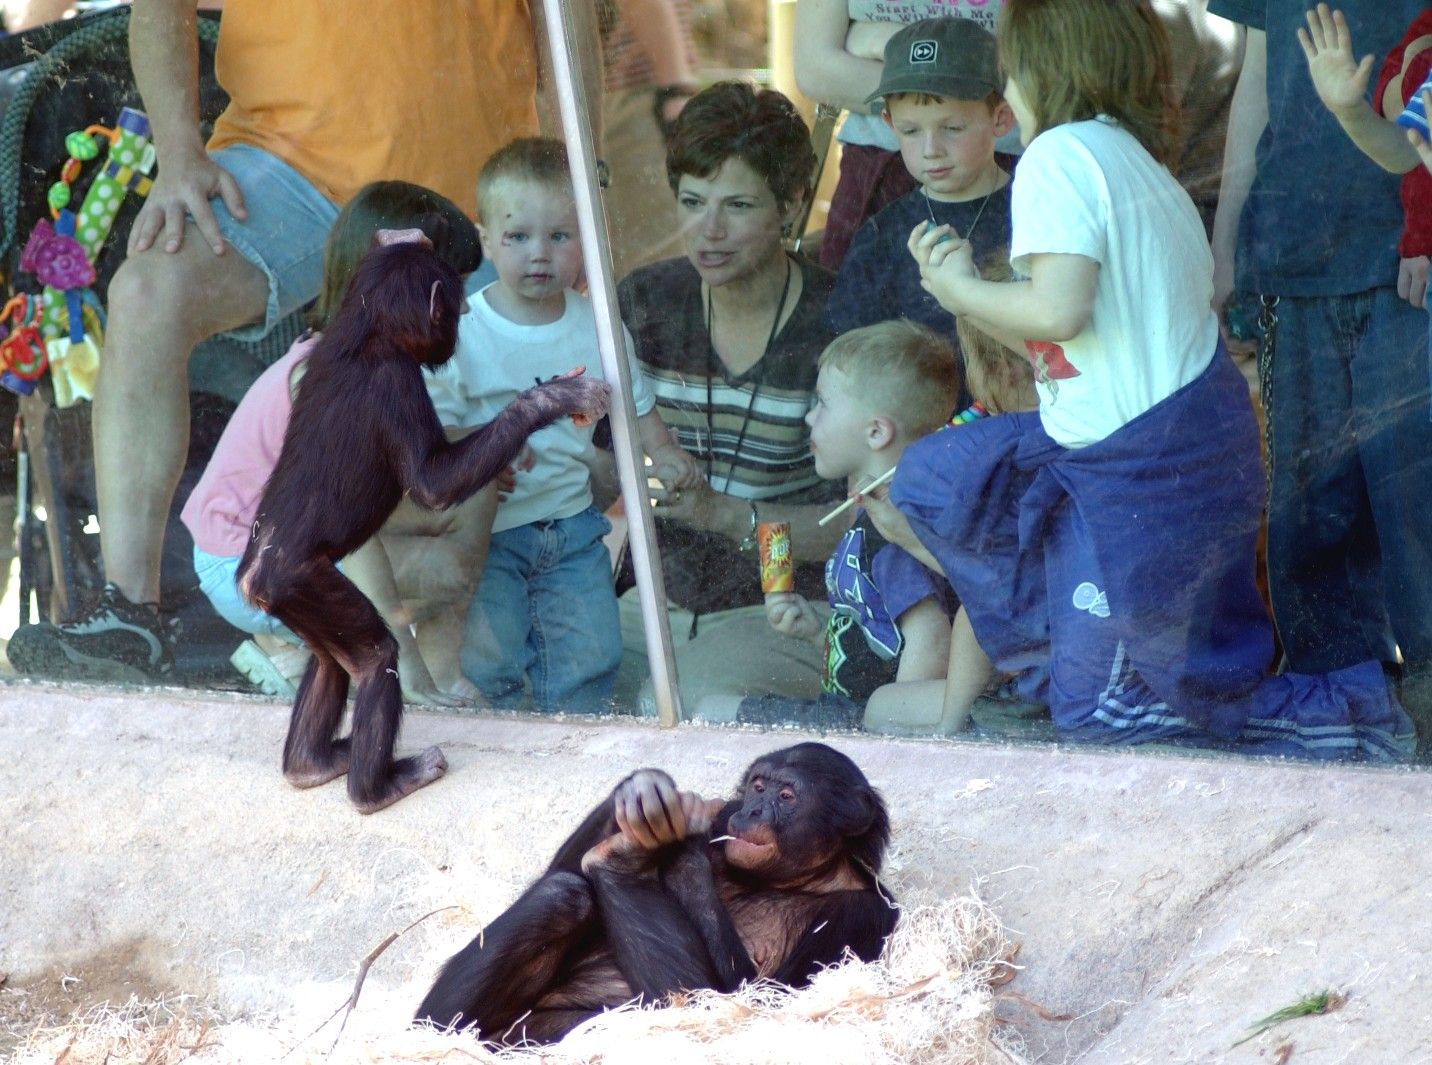 A family enjoys observing the baby bonobos